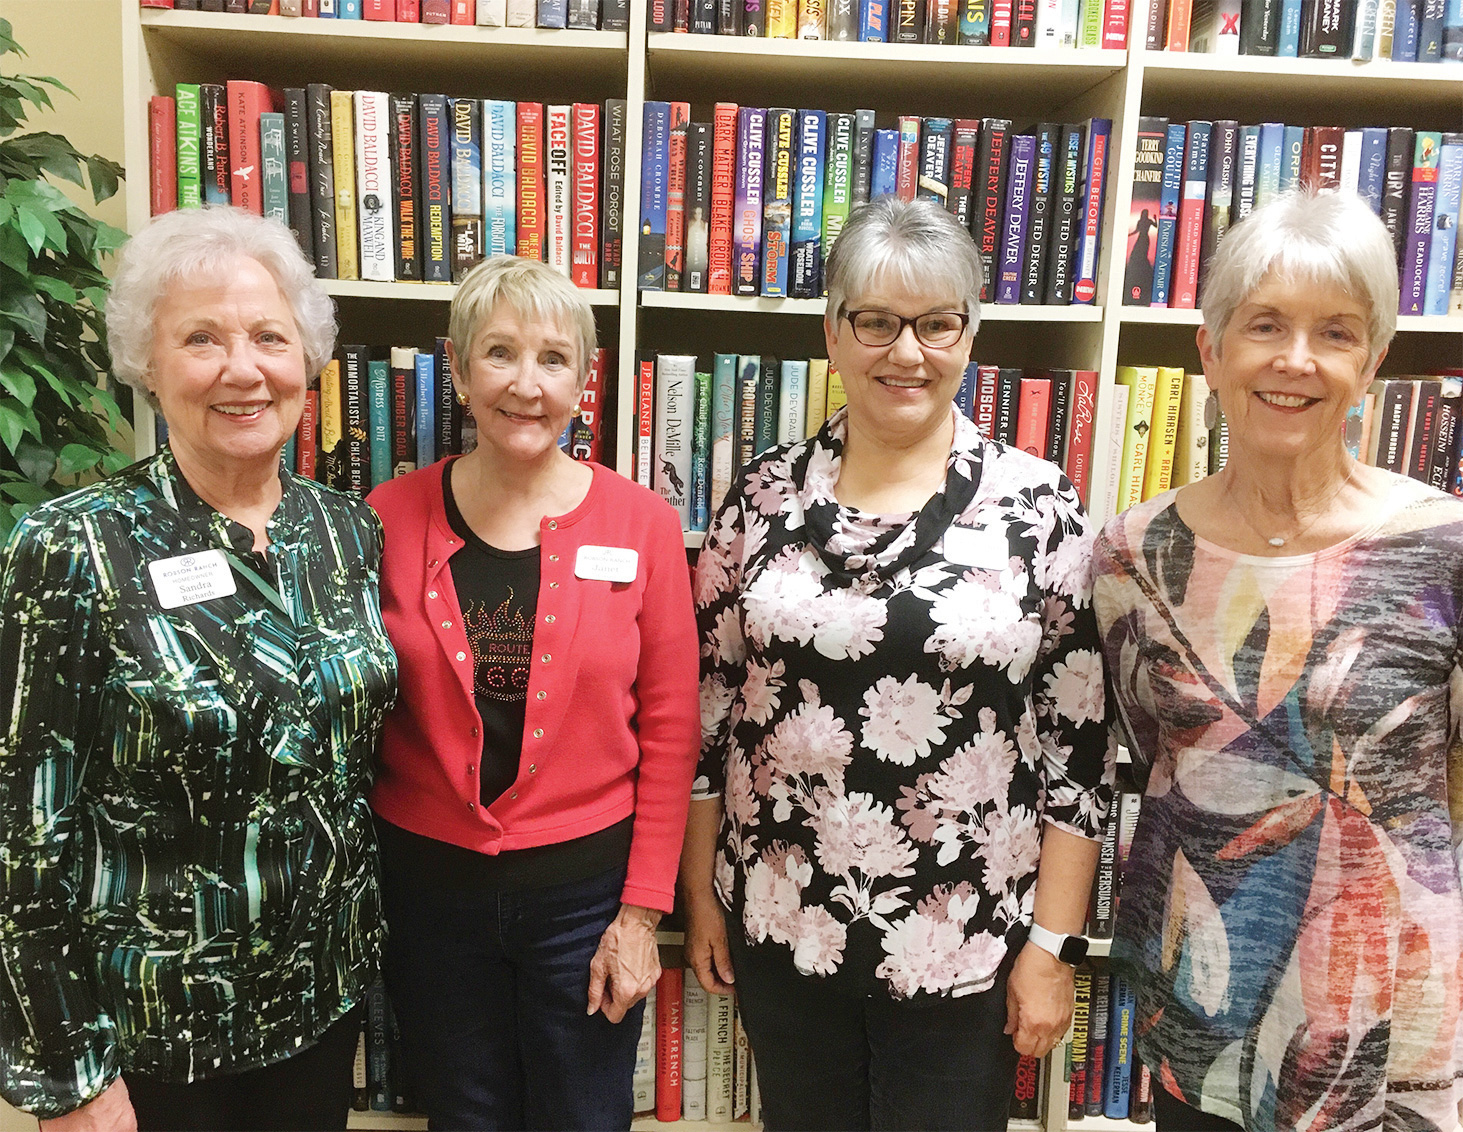 Four of Monday's volunteers (left to right): Sandra Richards, Janet Carr, Julie Gronneberg, and Marsha Scholze